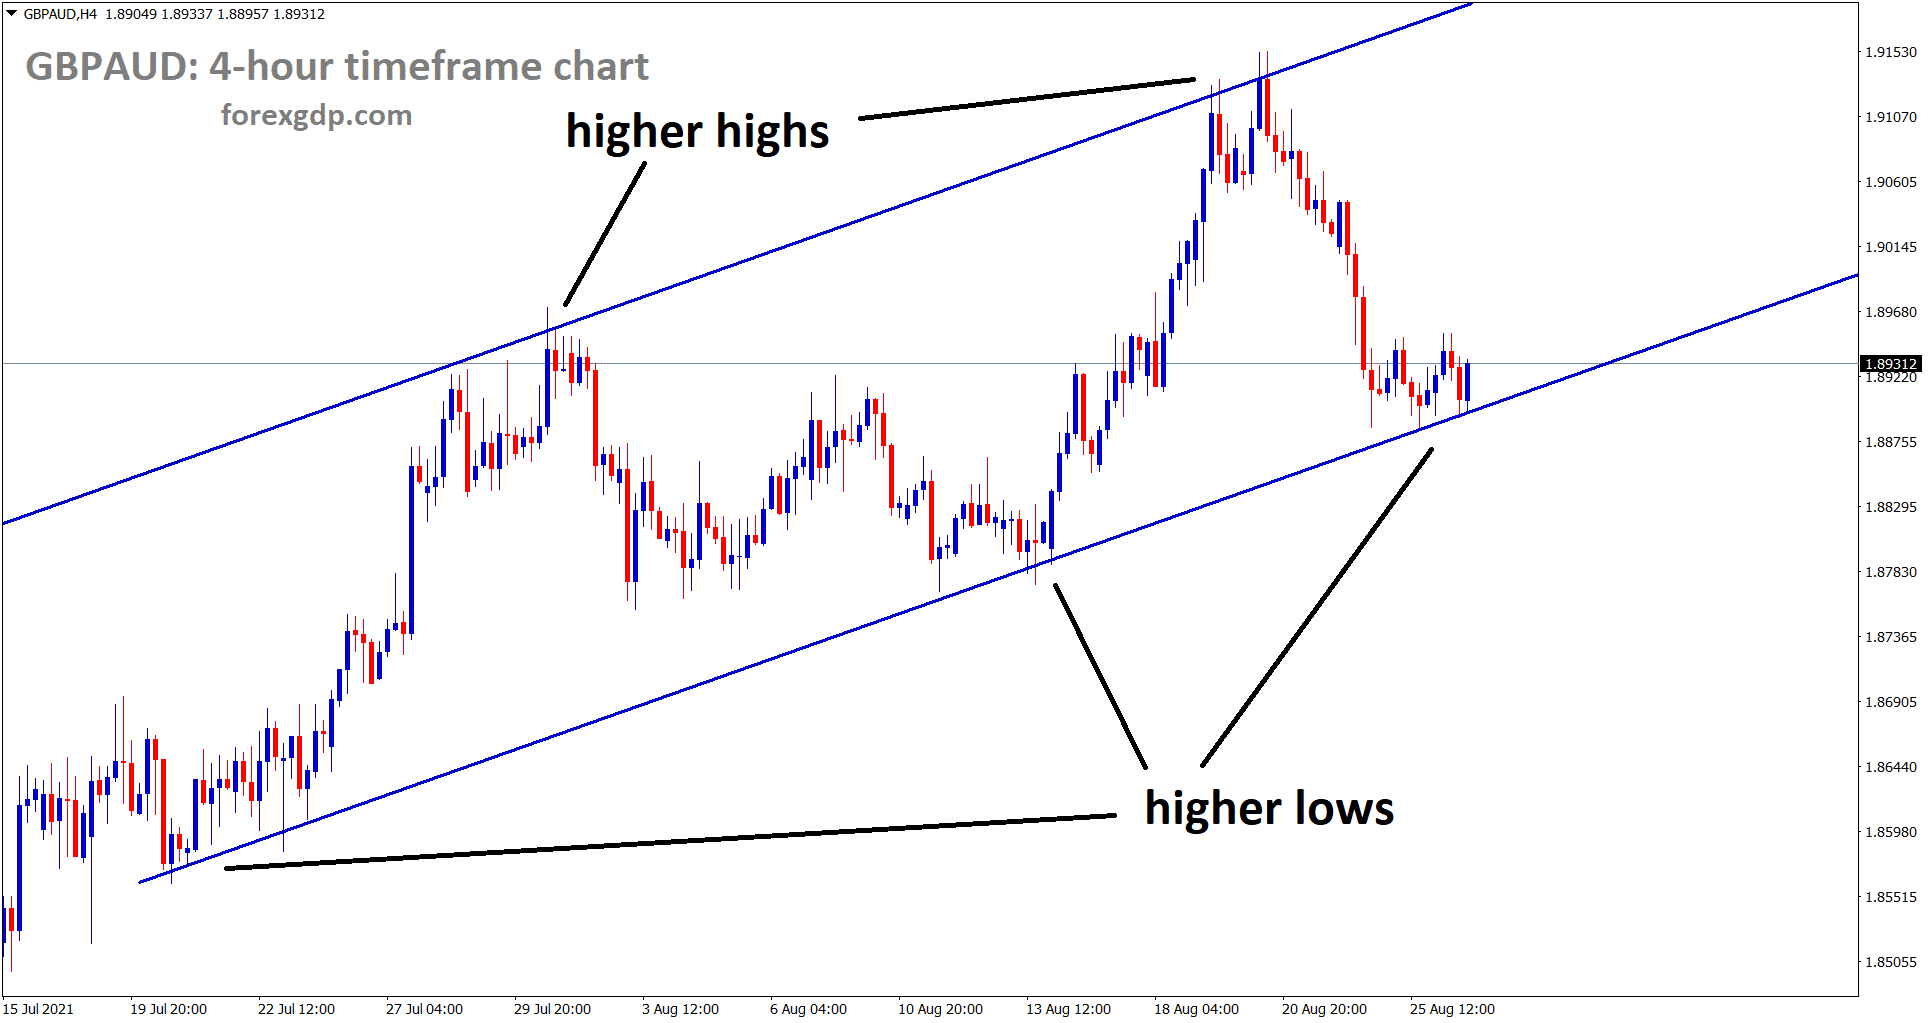 GBPAUD hits the higher low area of the uptrend line